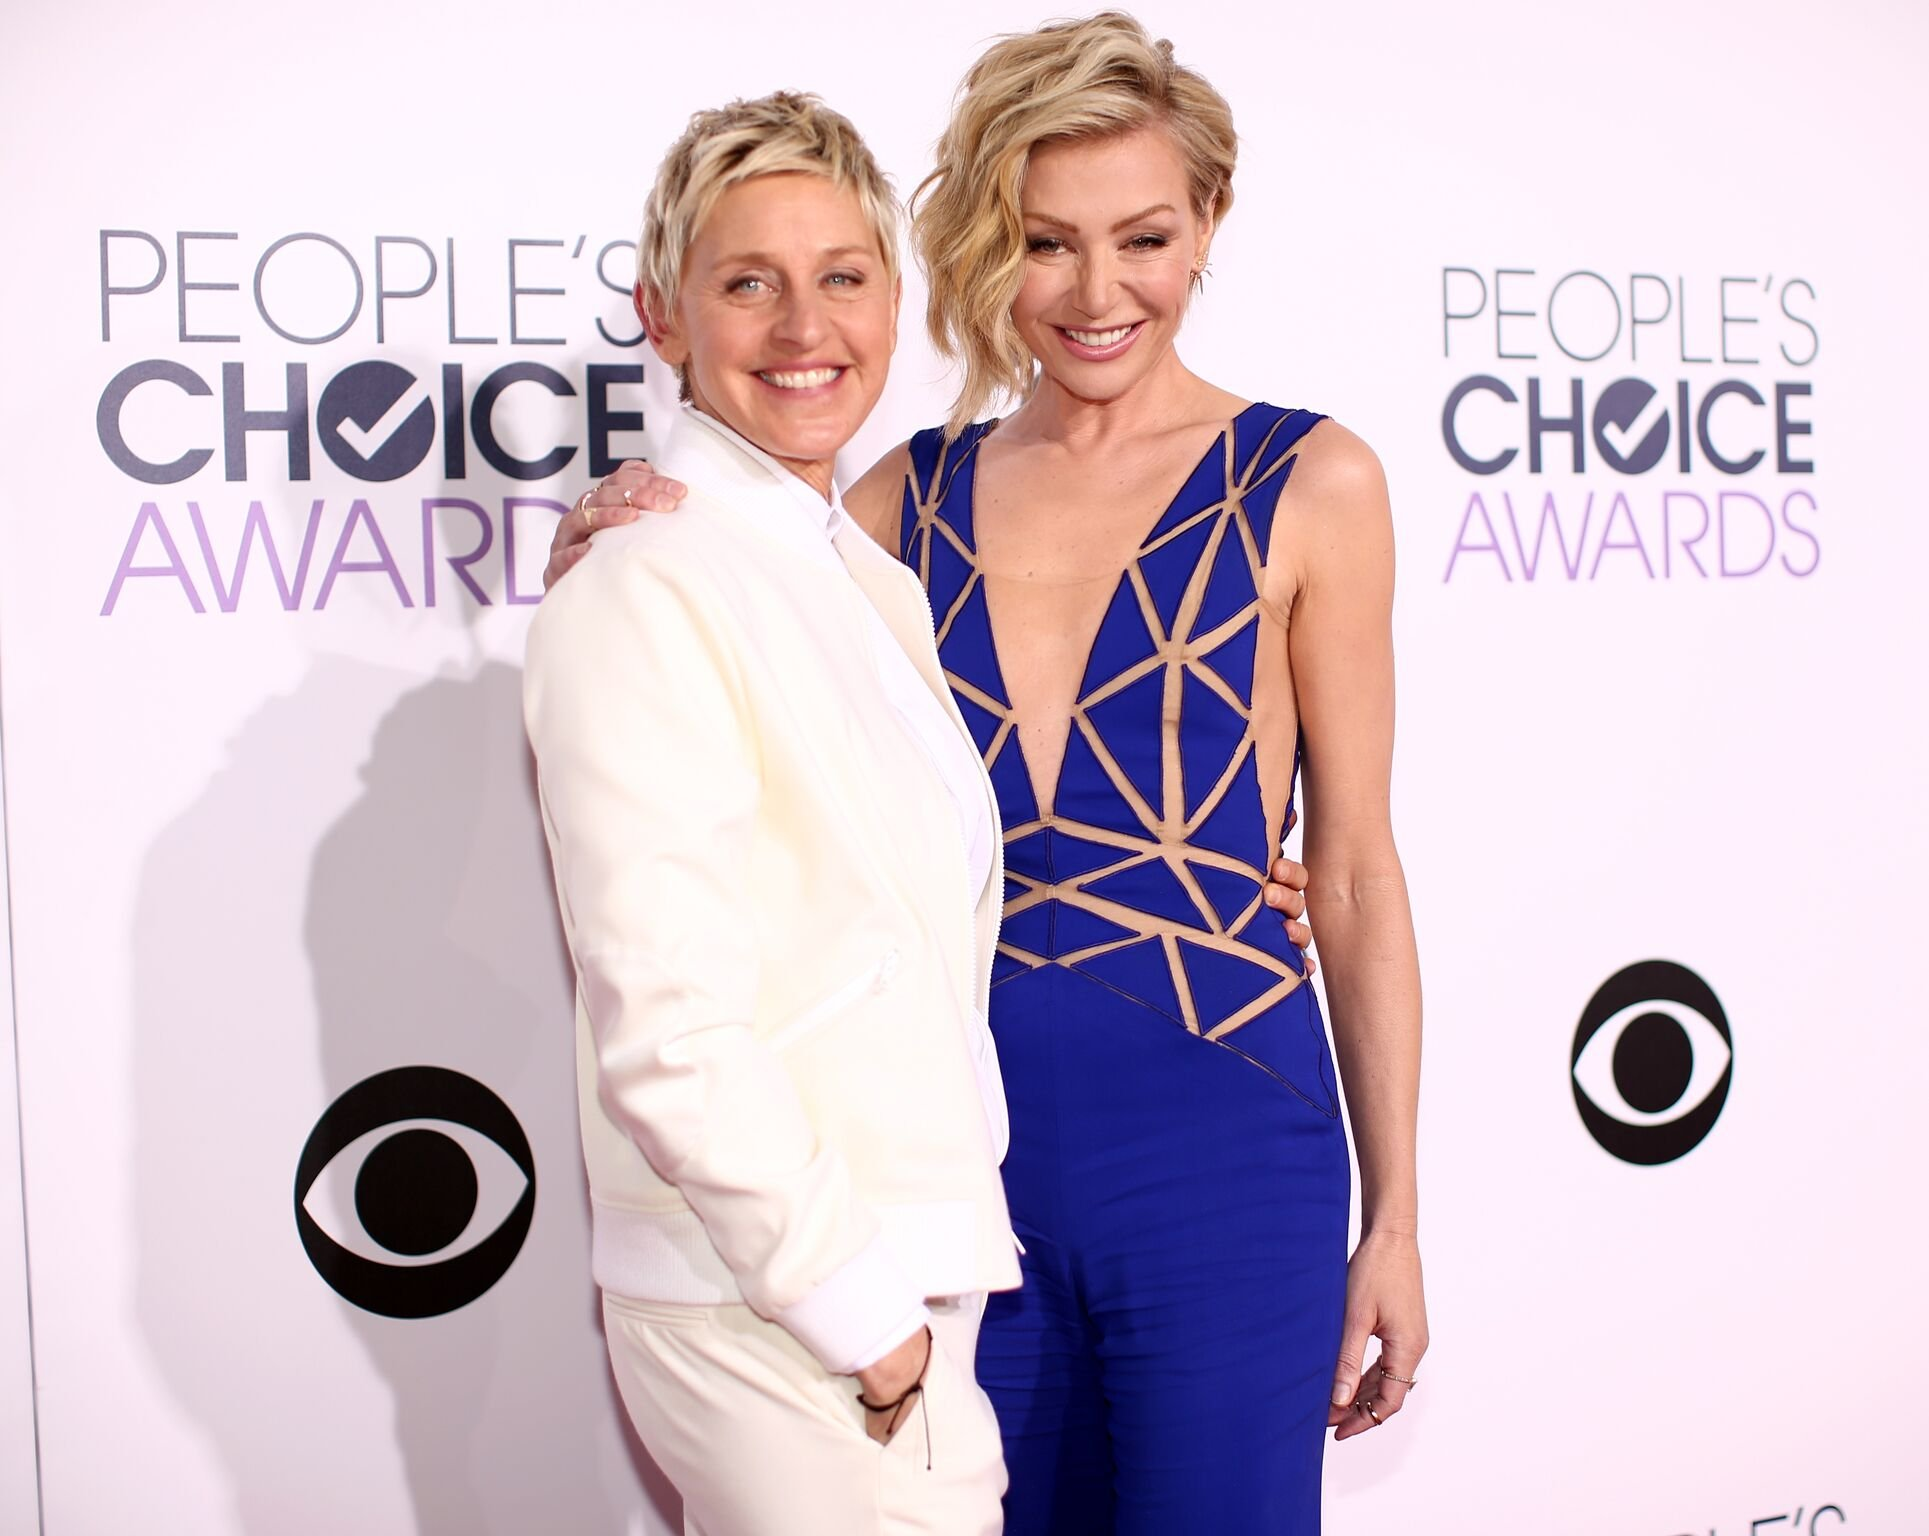 Ellen DeGeneres (L) and actress Portia de Rossi attend The 41st Annual People's Choice Awards at Nokia Theatre LA Live | Getty Images / Global Images Ukraine